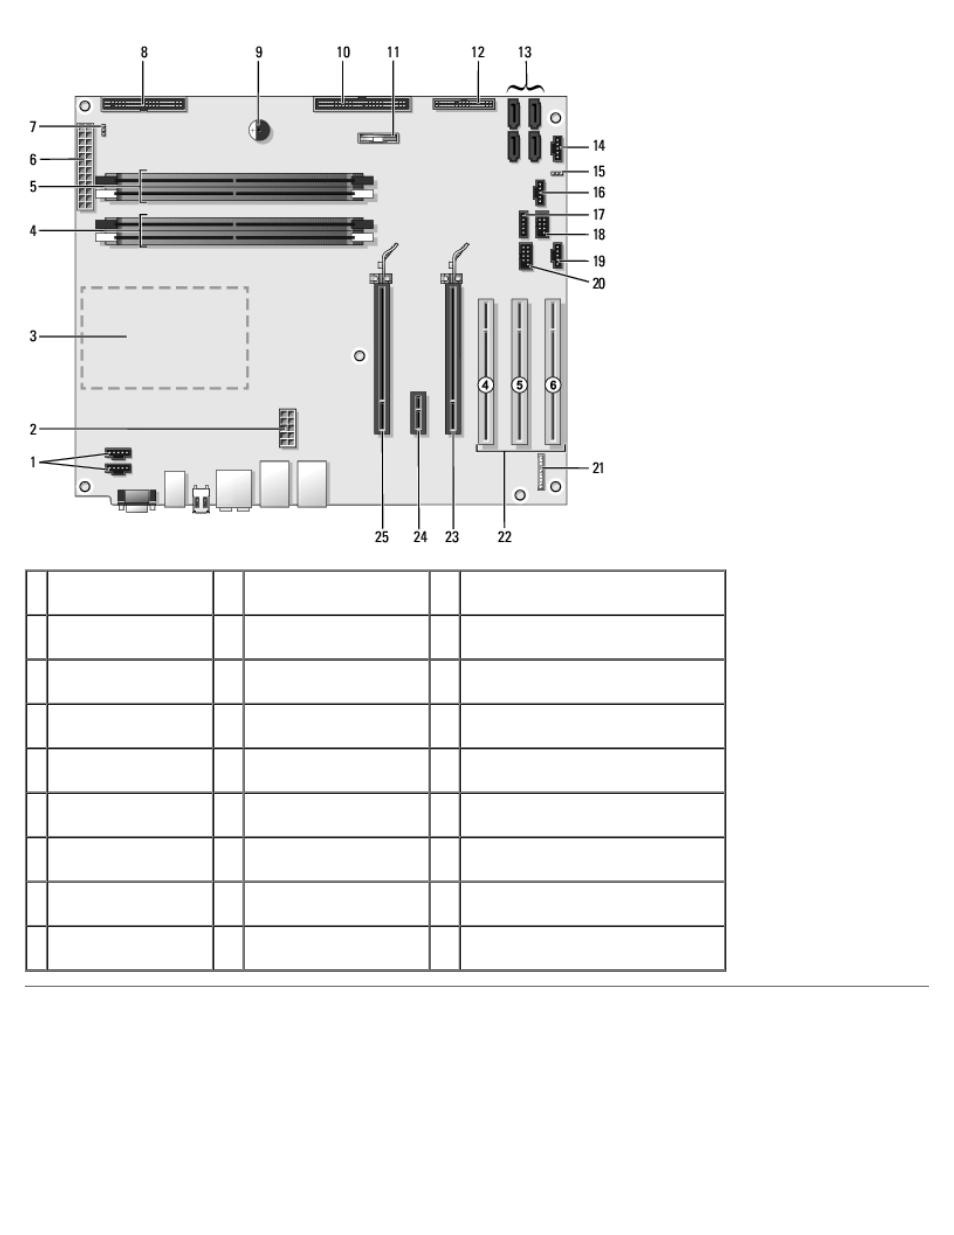 power supply dc connector pin assignments dell xps 600 user manual rh manualsdir com Dell XPS WHL Dell XPS 600 Motherboard